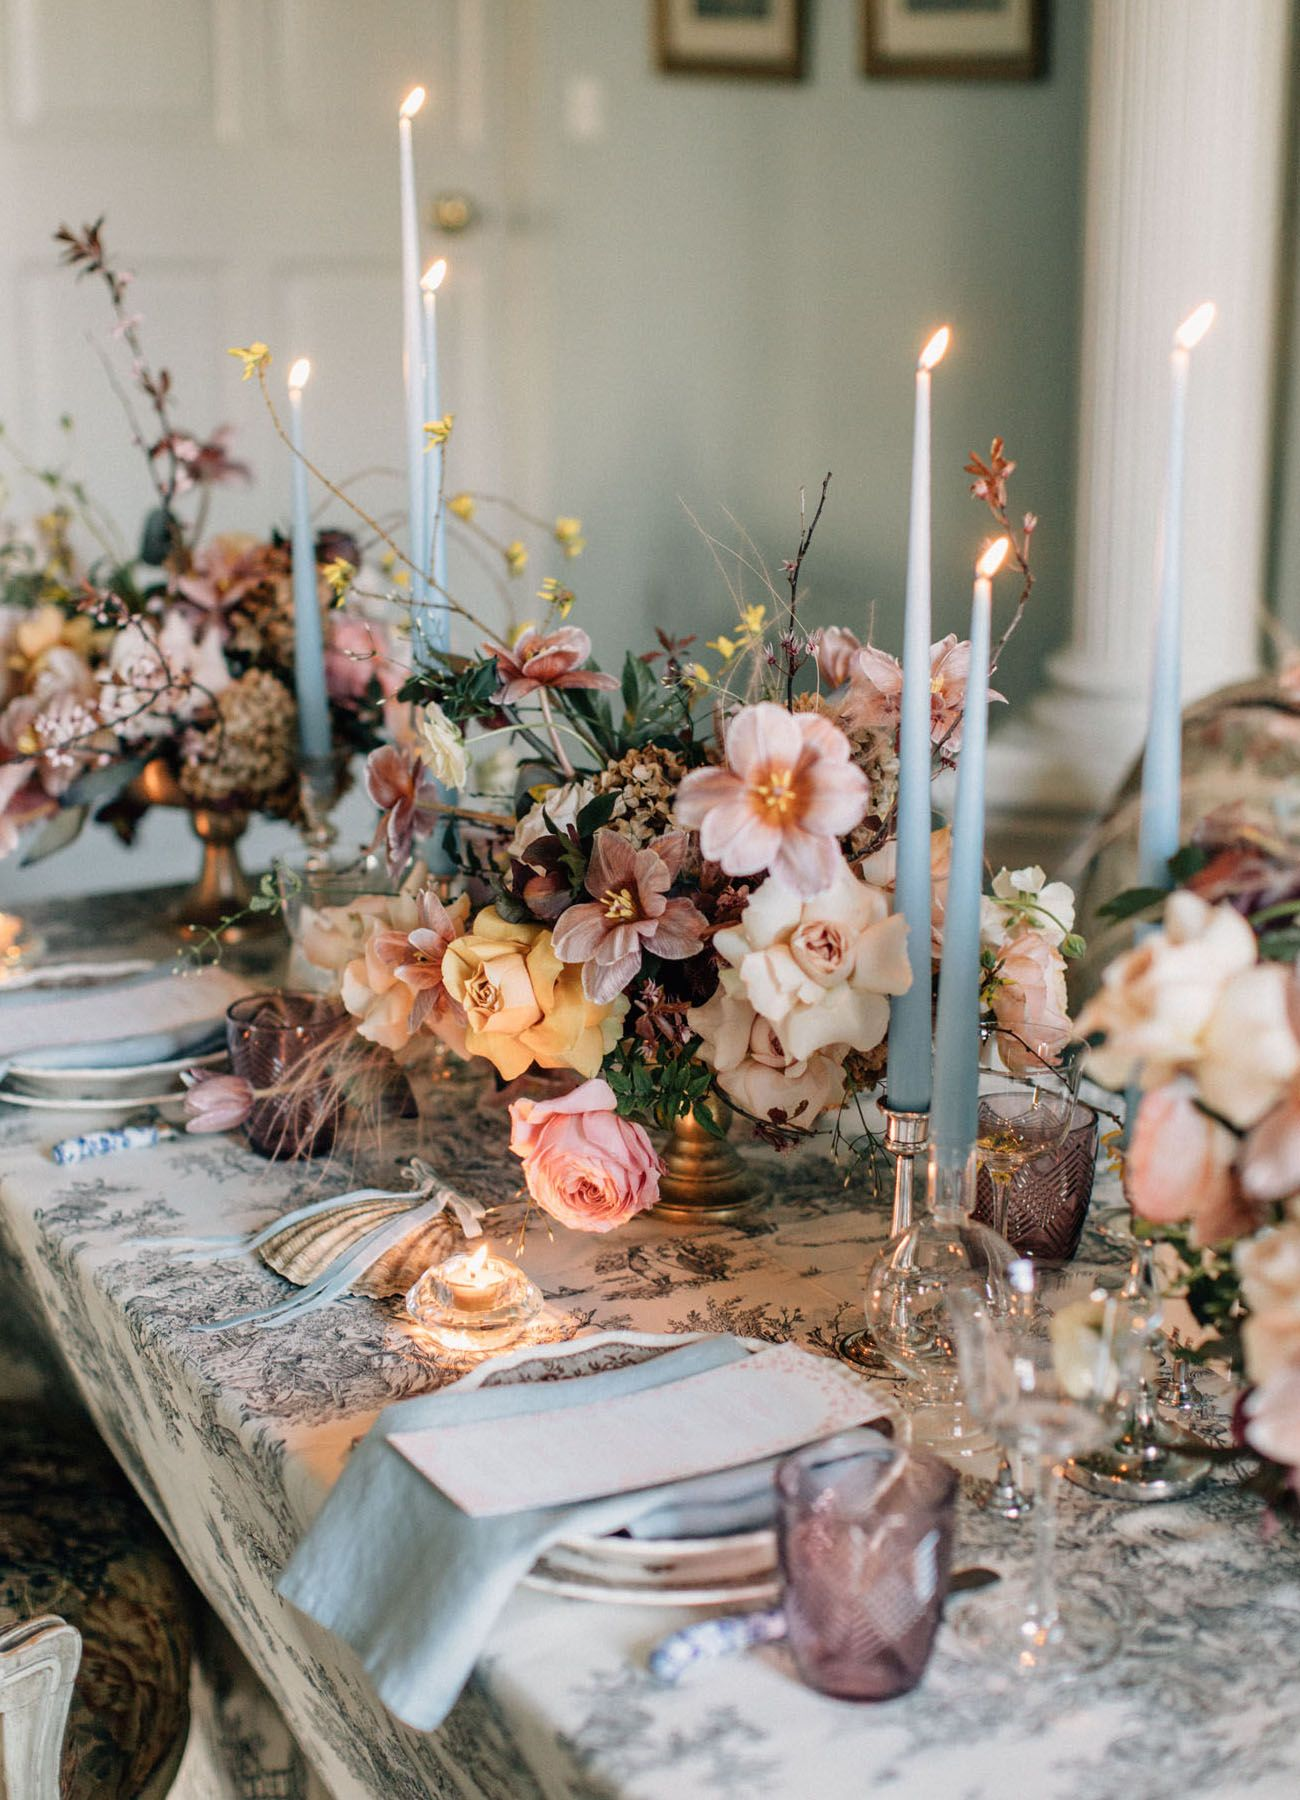 Old World Romance Meets Modern Style in this Royally Decadent ...